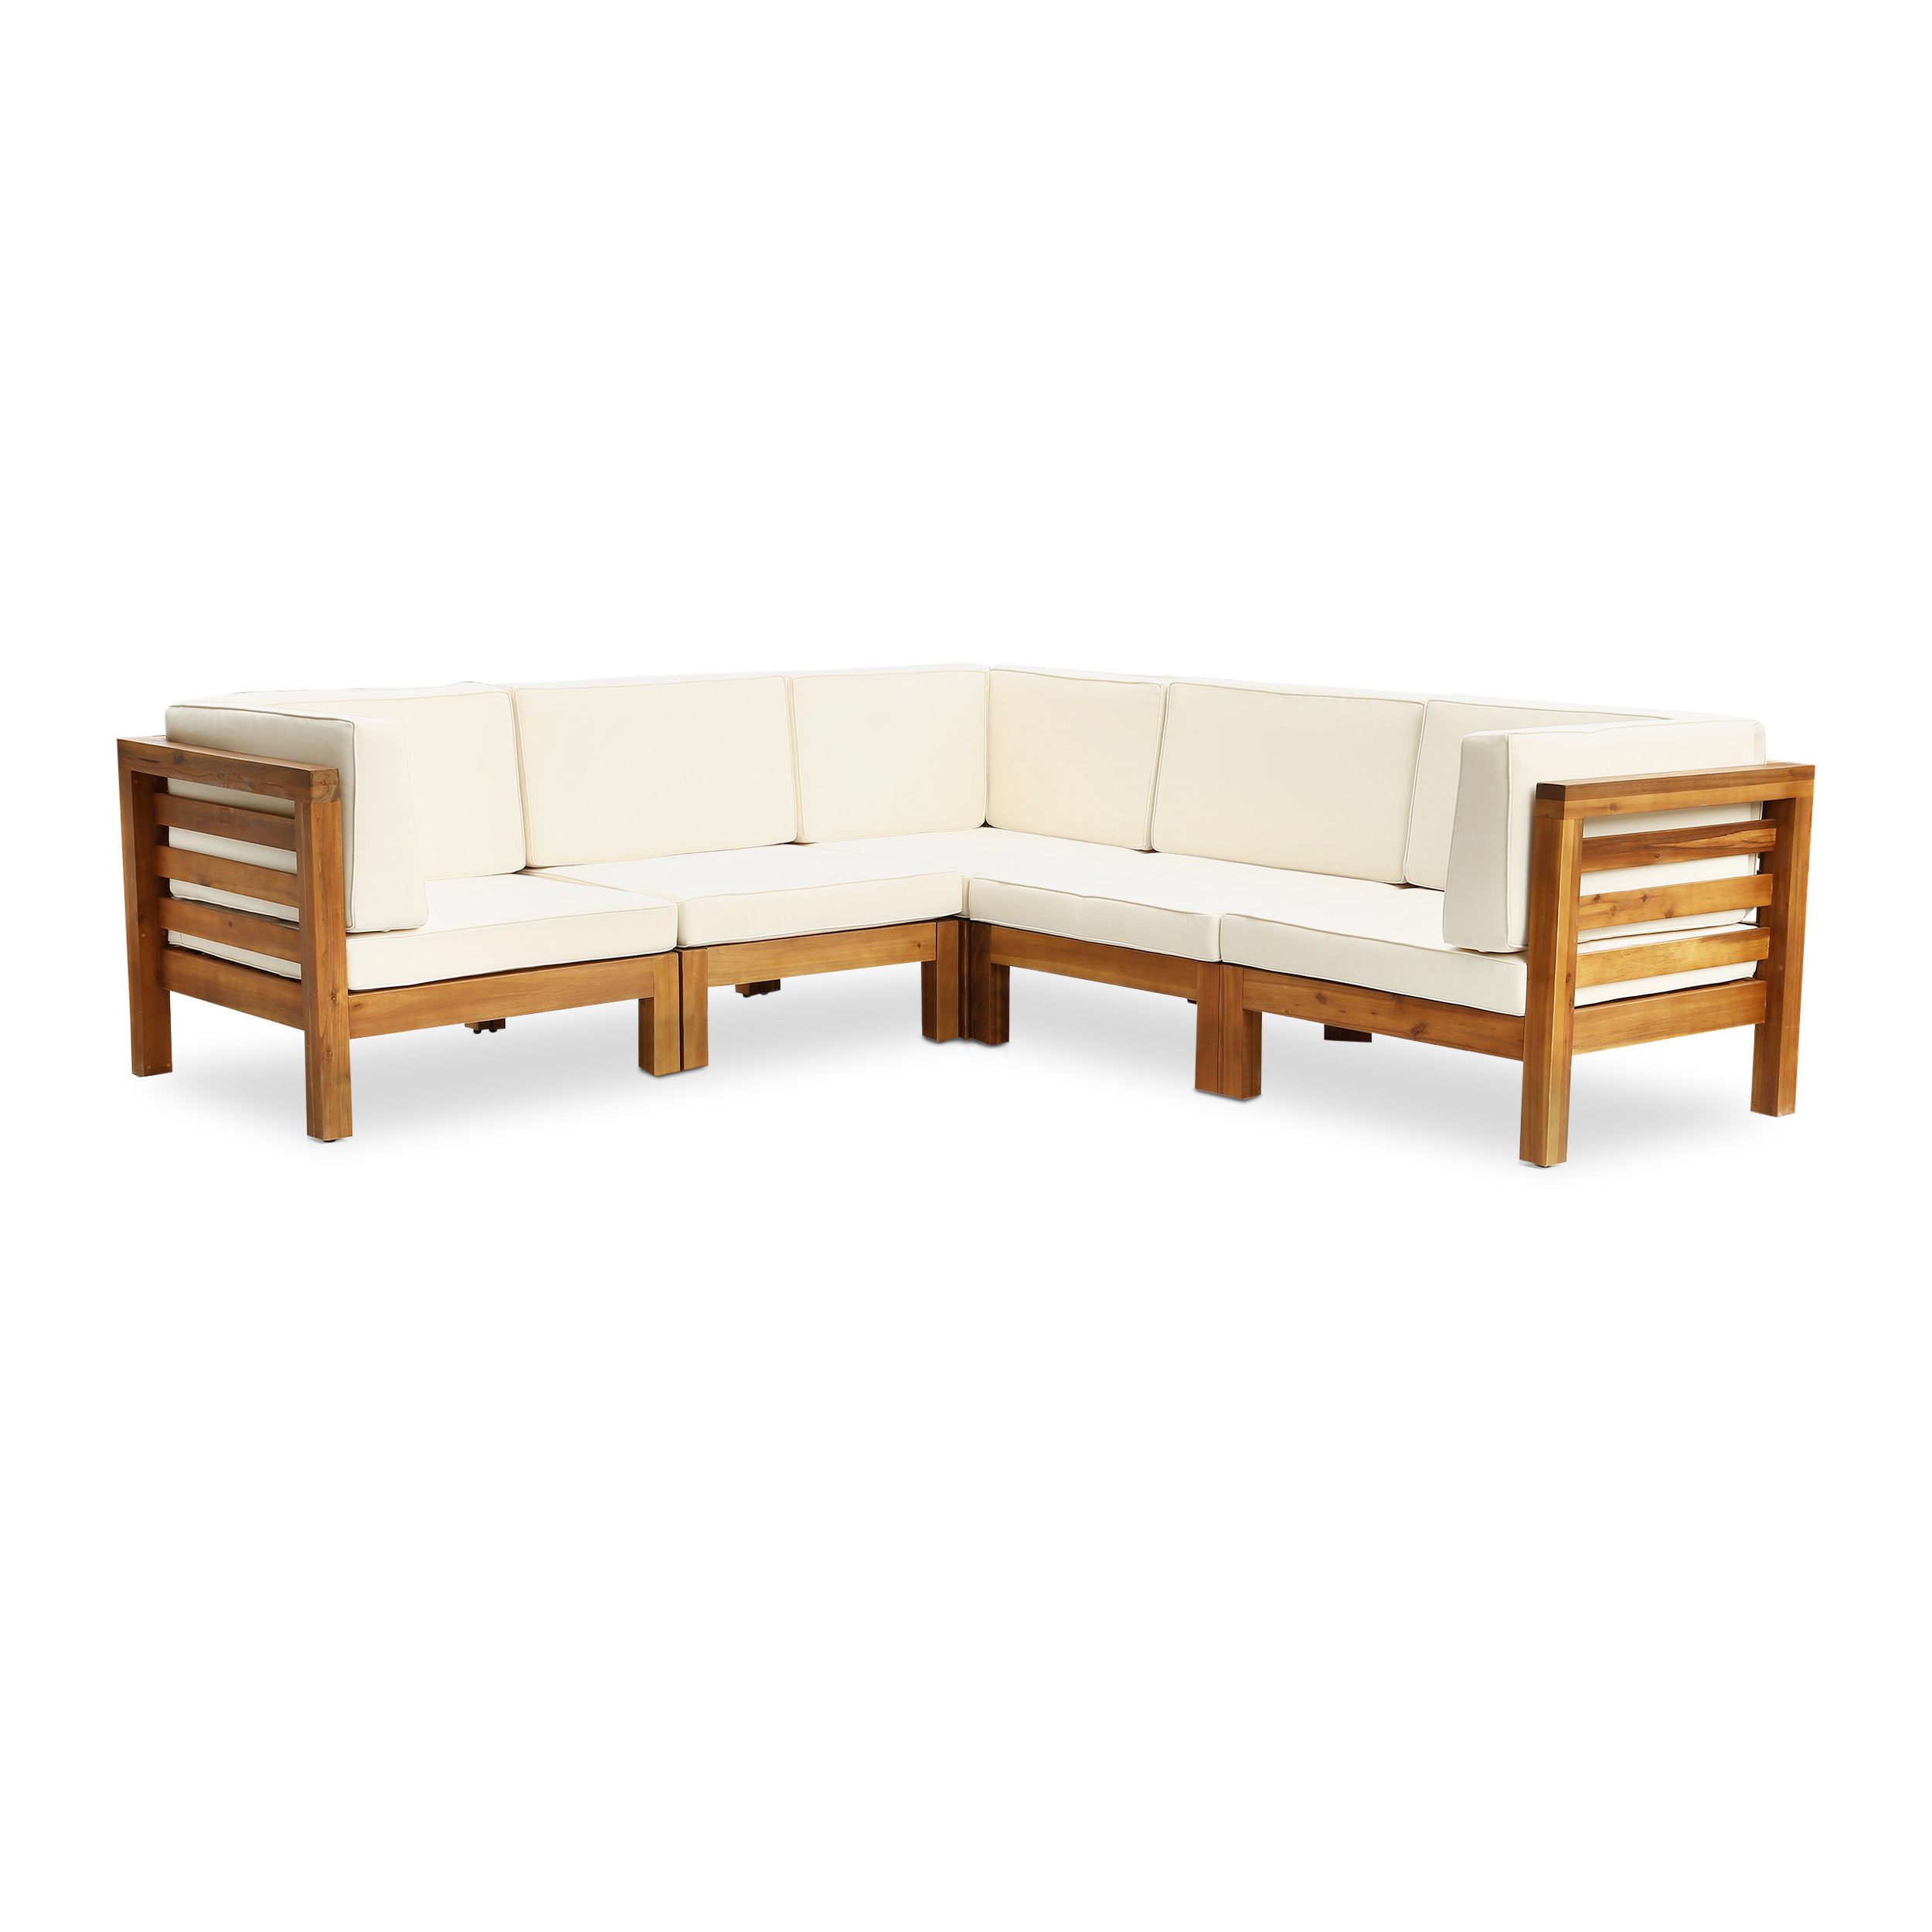 Seaham Teak Patio Sectional With Cushions With Trendy Seaham Patio Sectionals With Cushions (View 4 of 20)